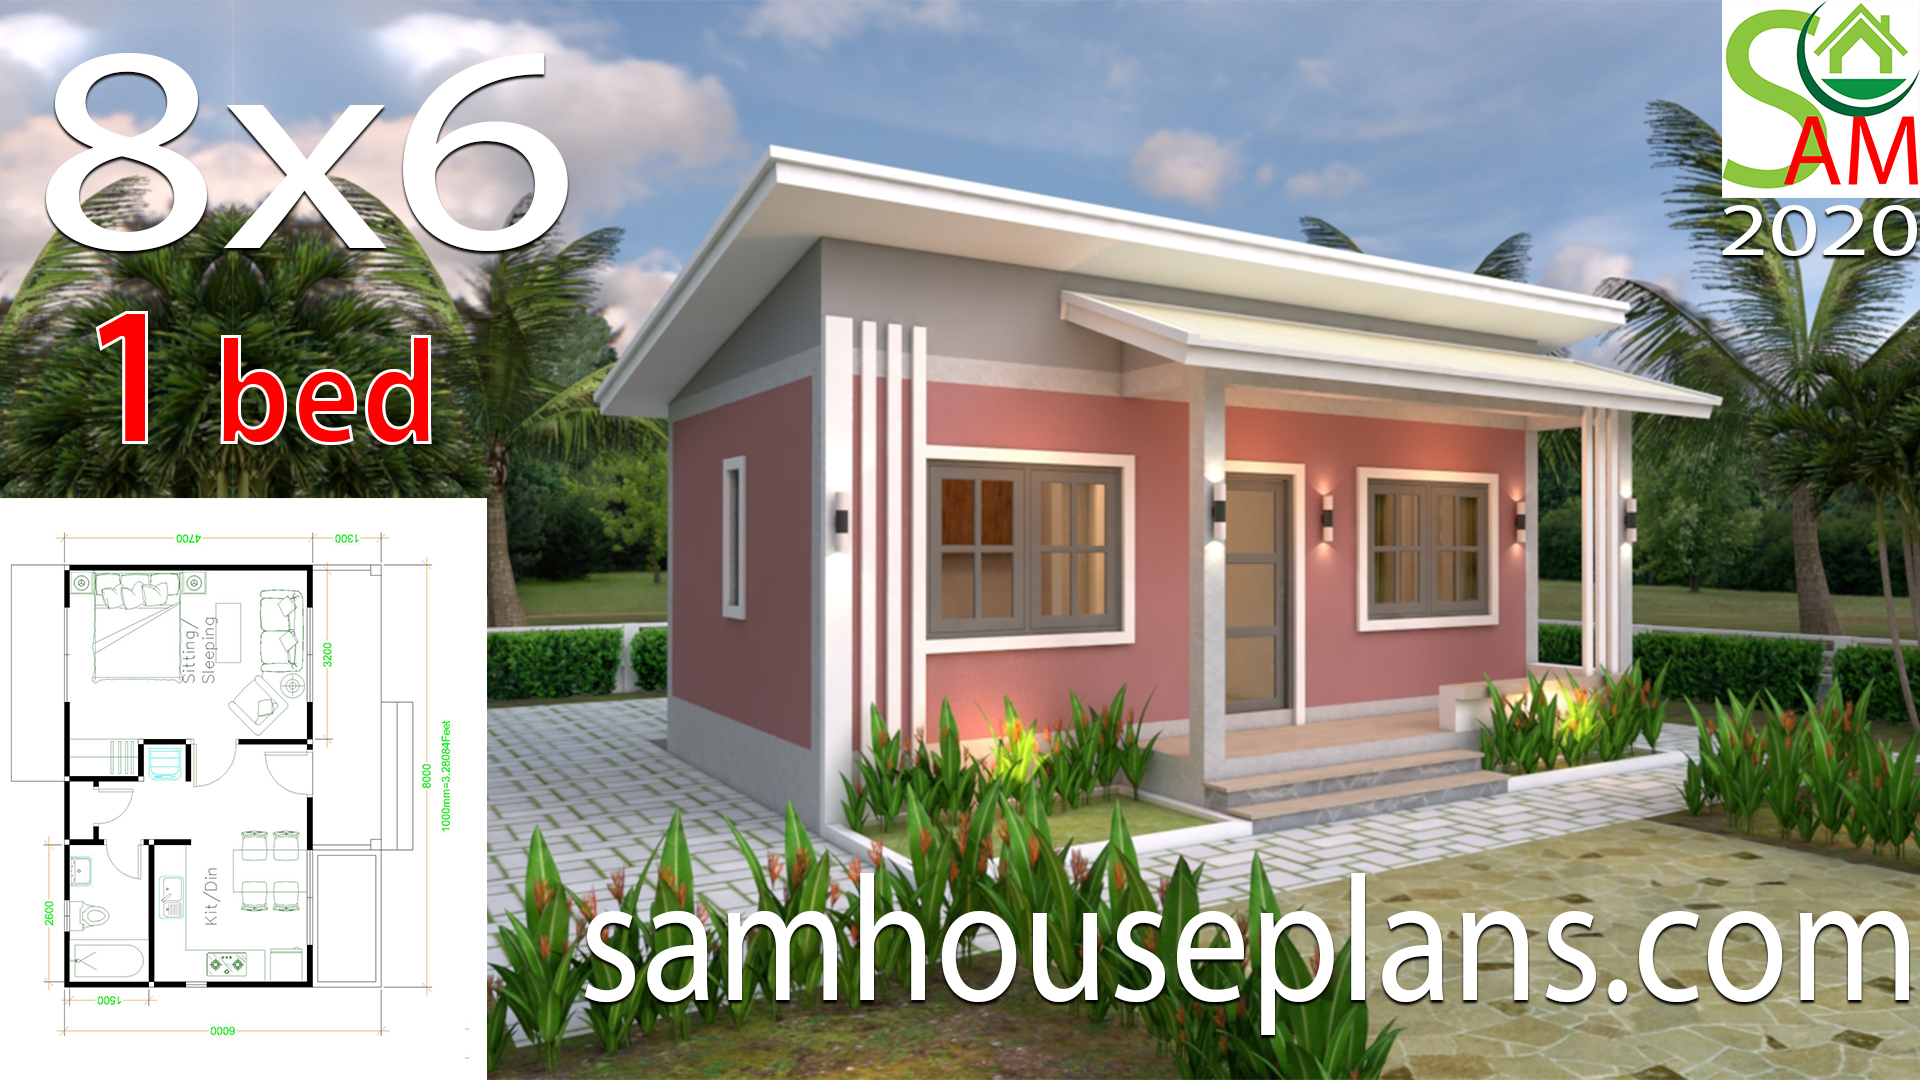 House Plans 8x6 With One Bedrooms Shed Roof Samhouseplans